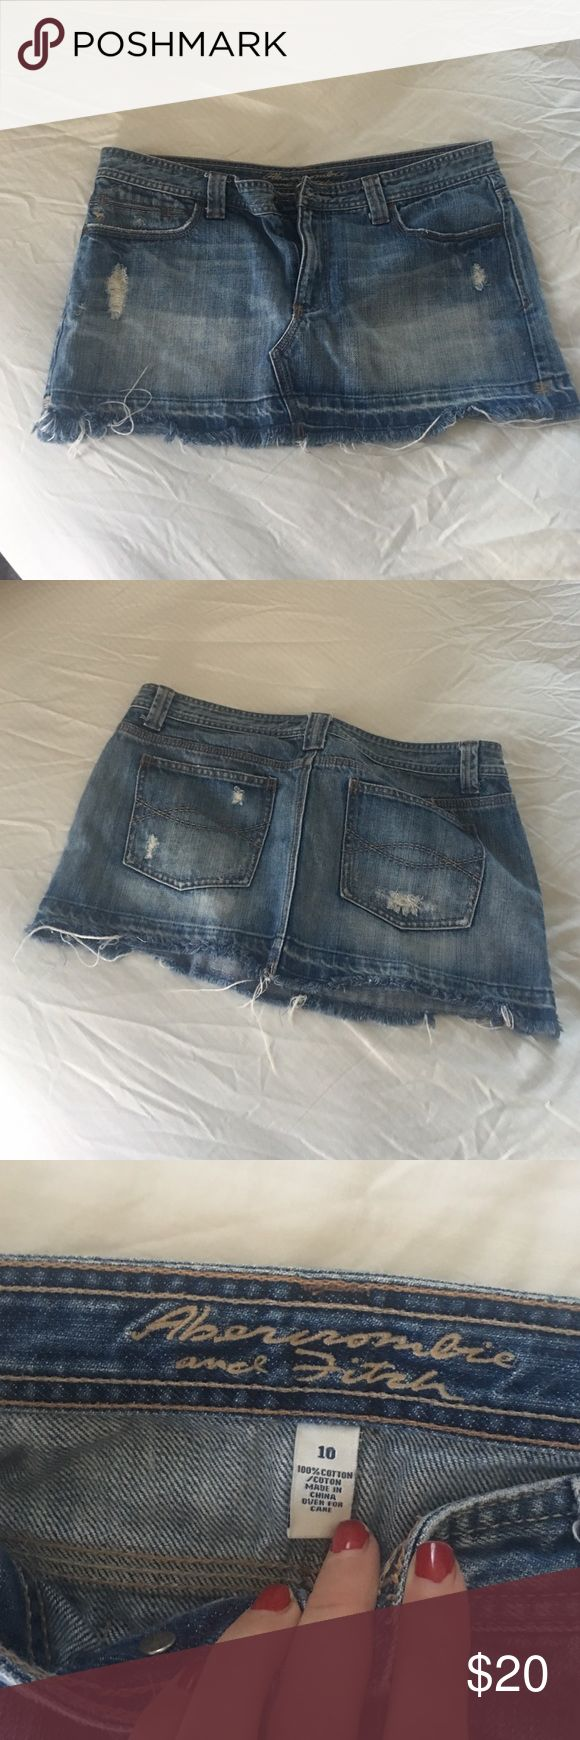 Abercrombie and fitch denim mini Distressed denim mini skirt Abercrombie & Fitch Skirts Mini